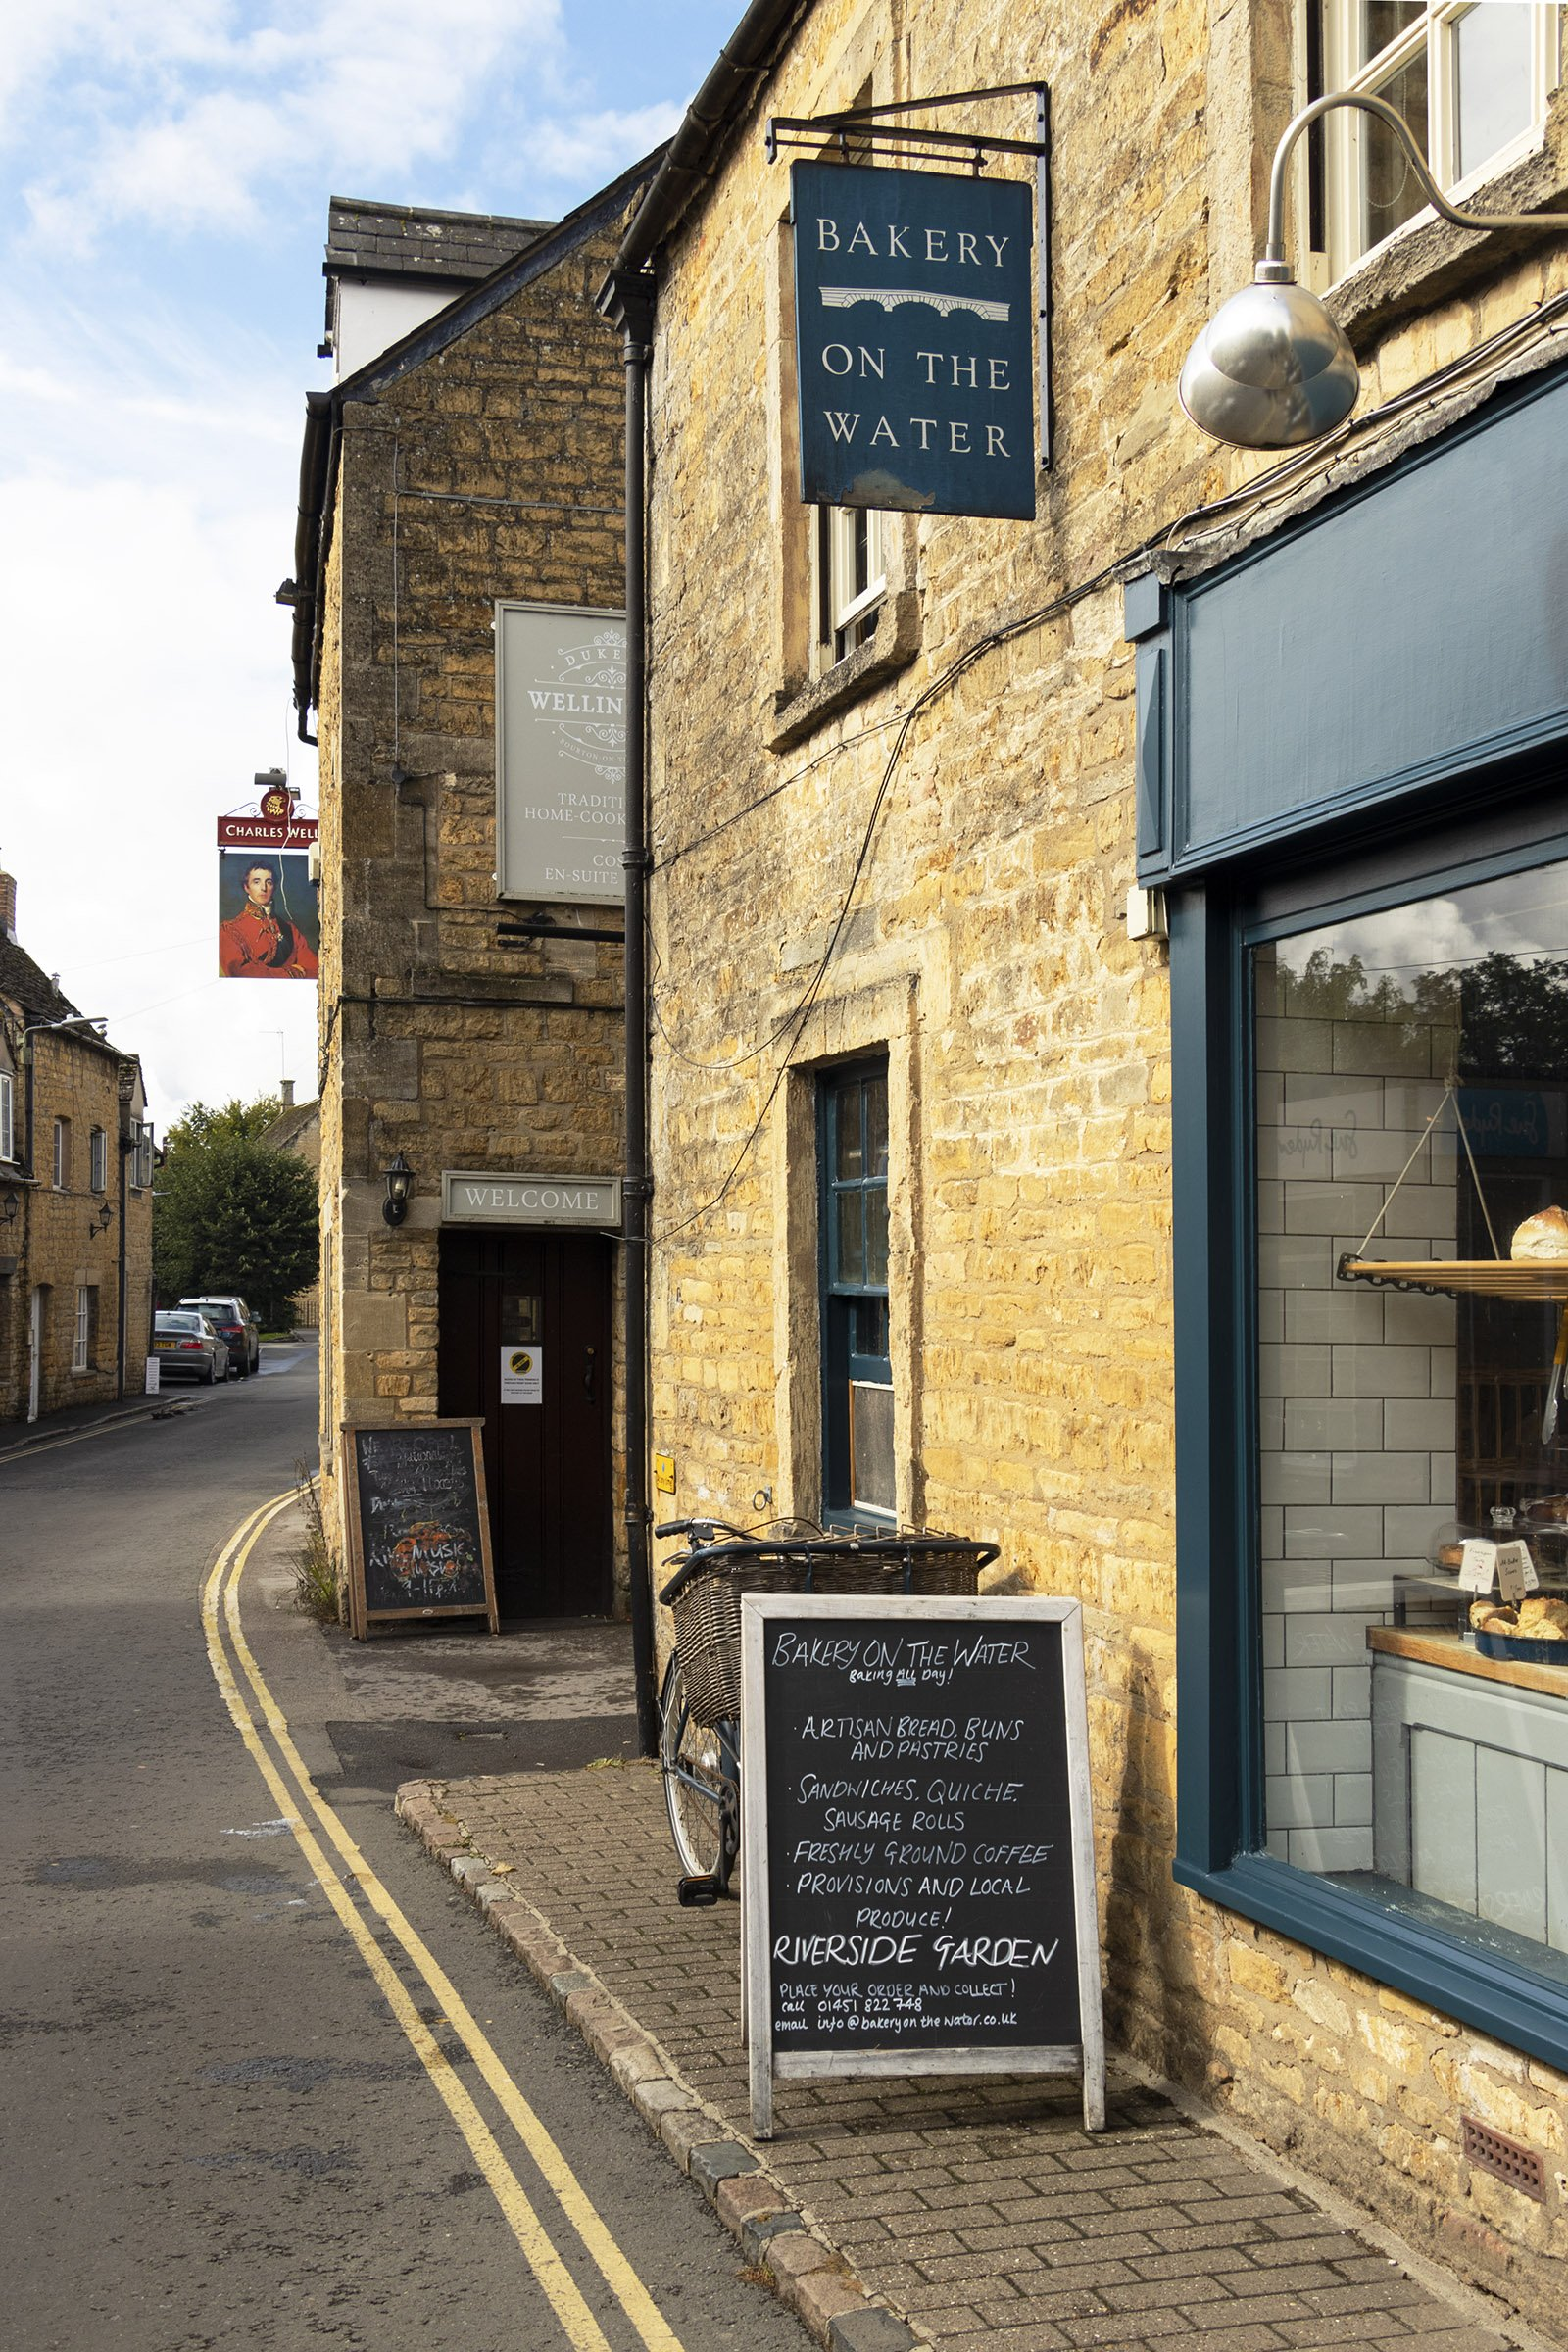 Bakery on the Water, Bourton on the Water